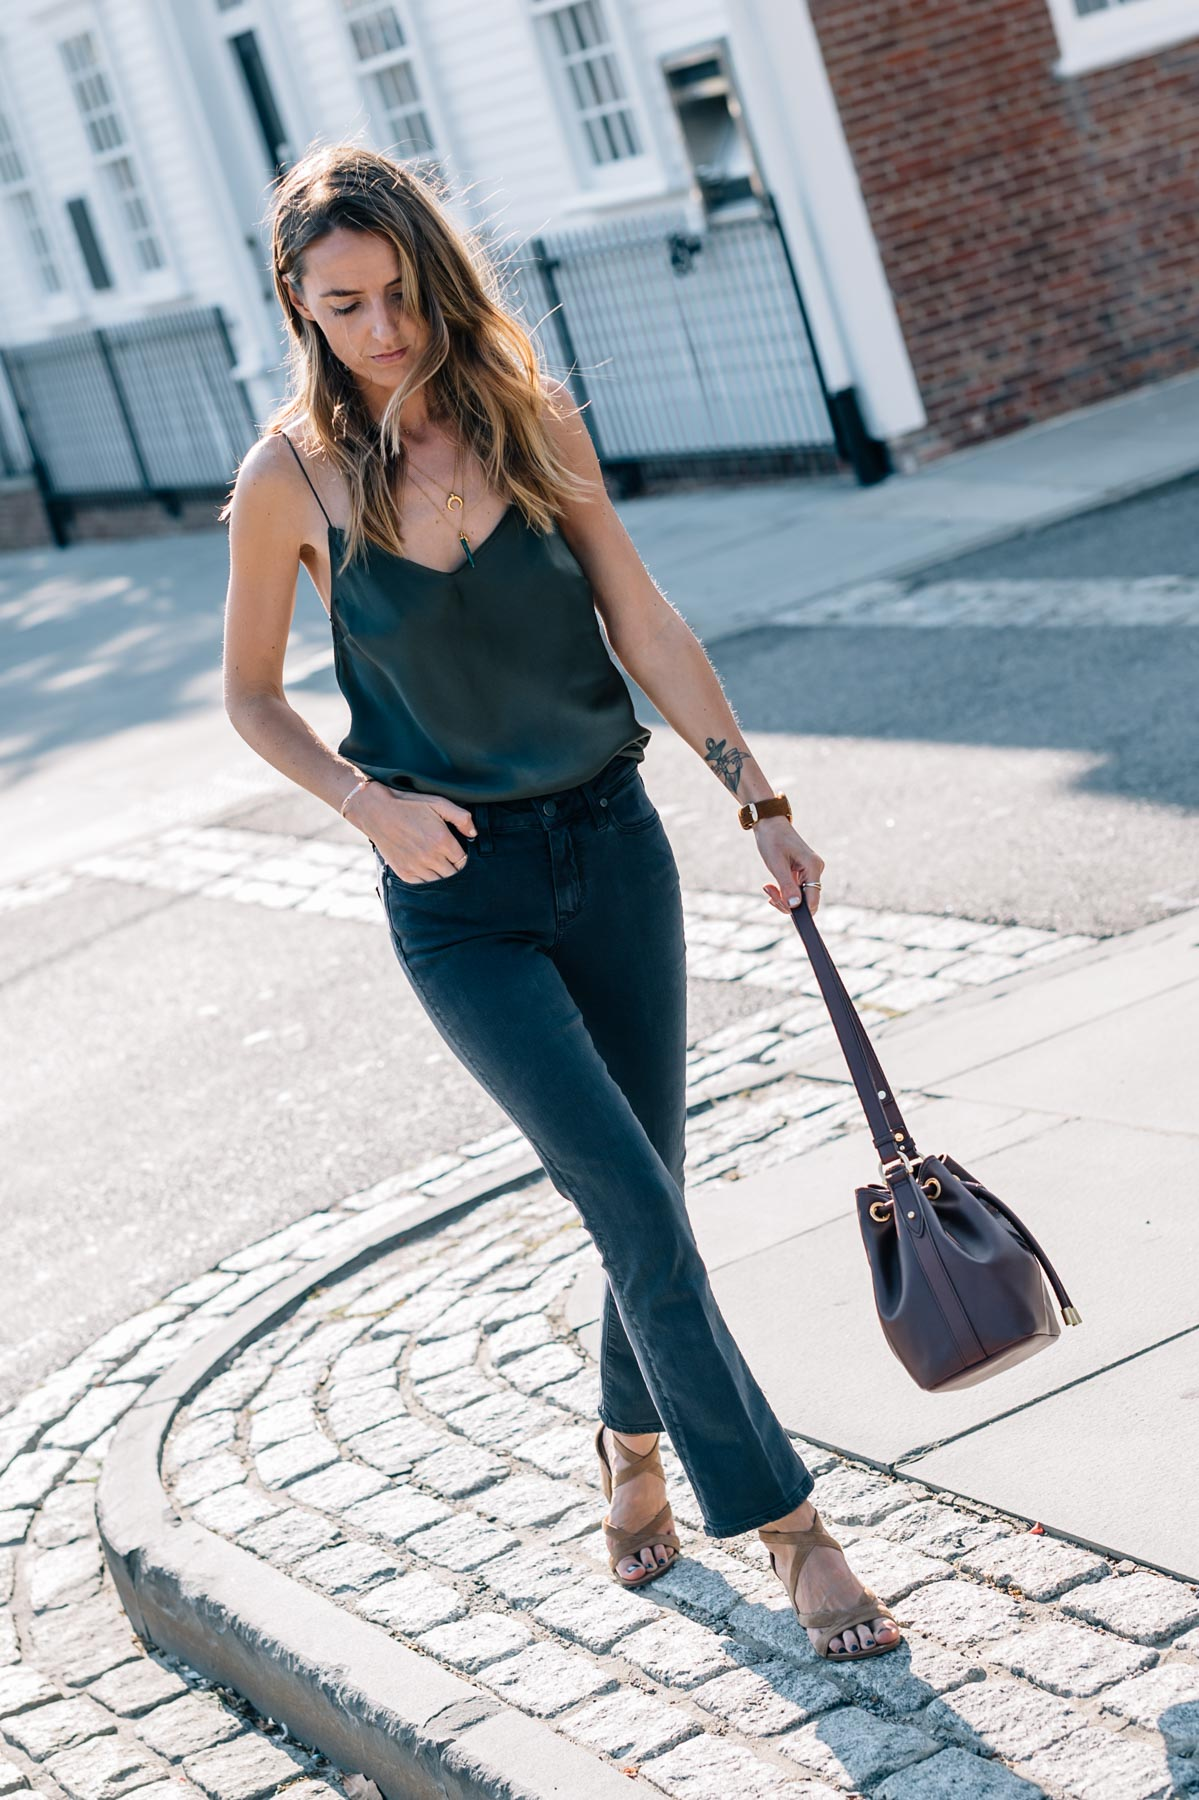 Transitional style for summer to fall on Jess Ann Kirby wearing the Paige Cecily Silk Camisole and Jocelyn Crop Flare